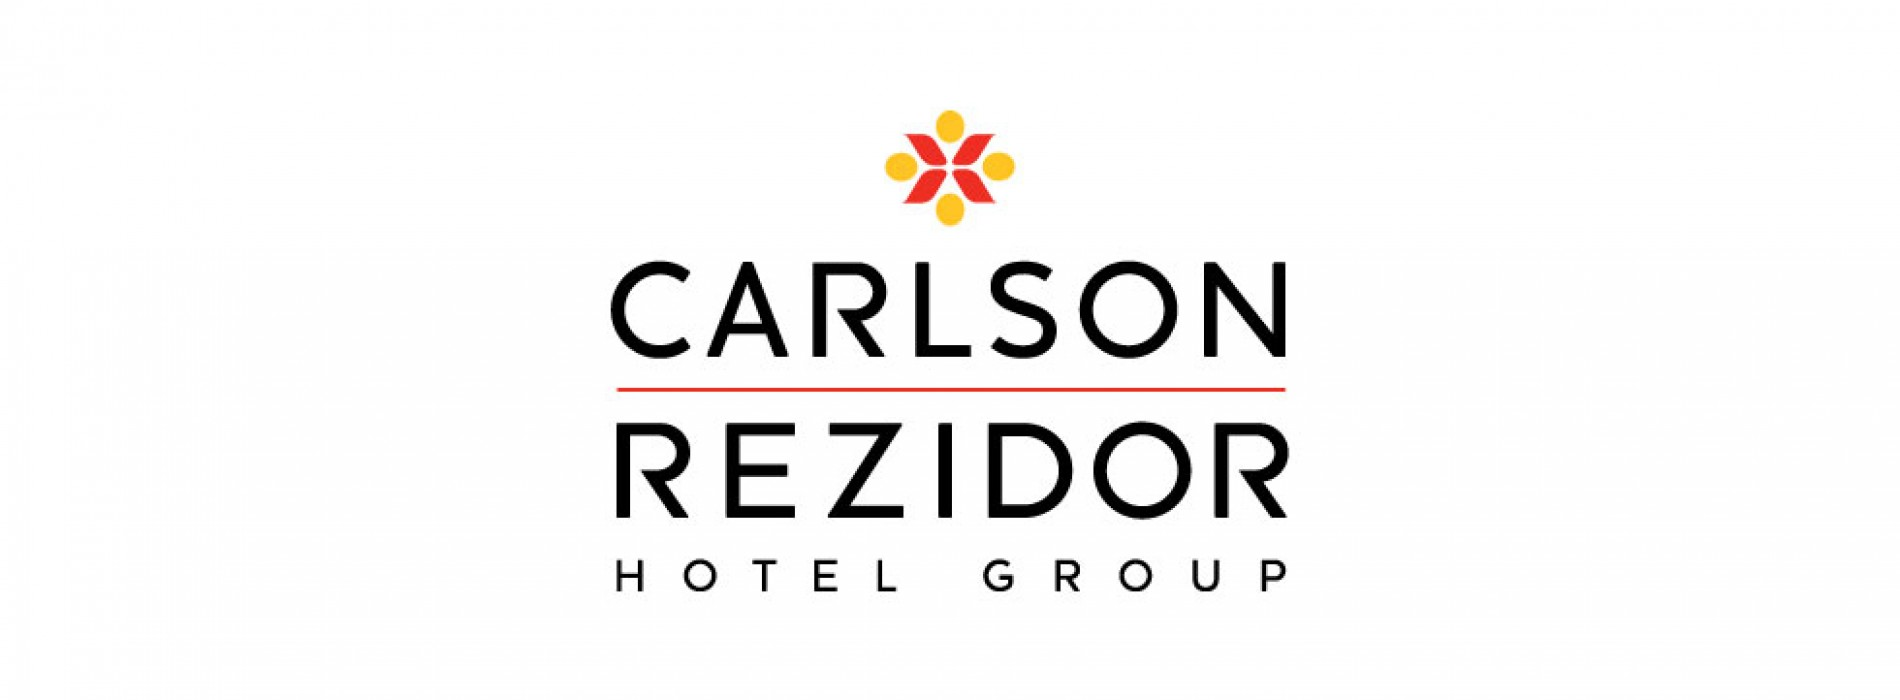 Carlson Rezidor hotel group signs seven hotels in Jammu and Kashmir in a multiple-property deal comprising 817 rooms